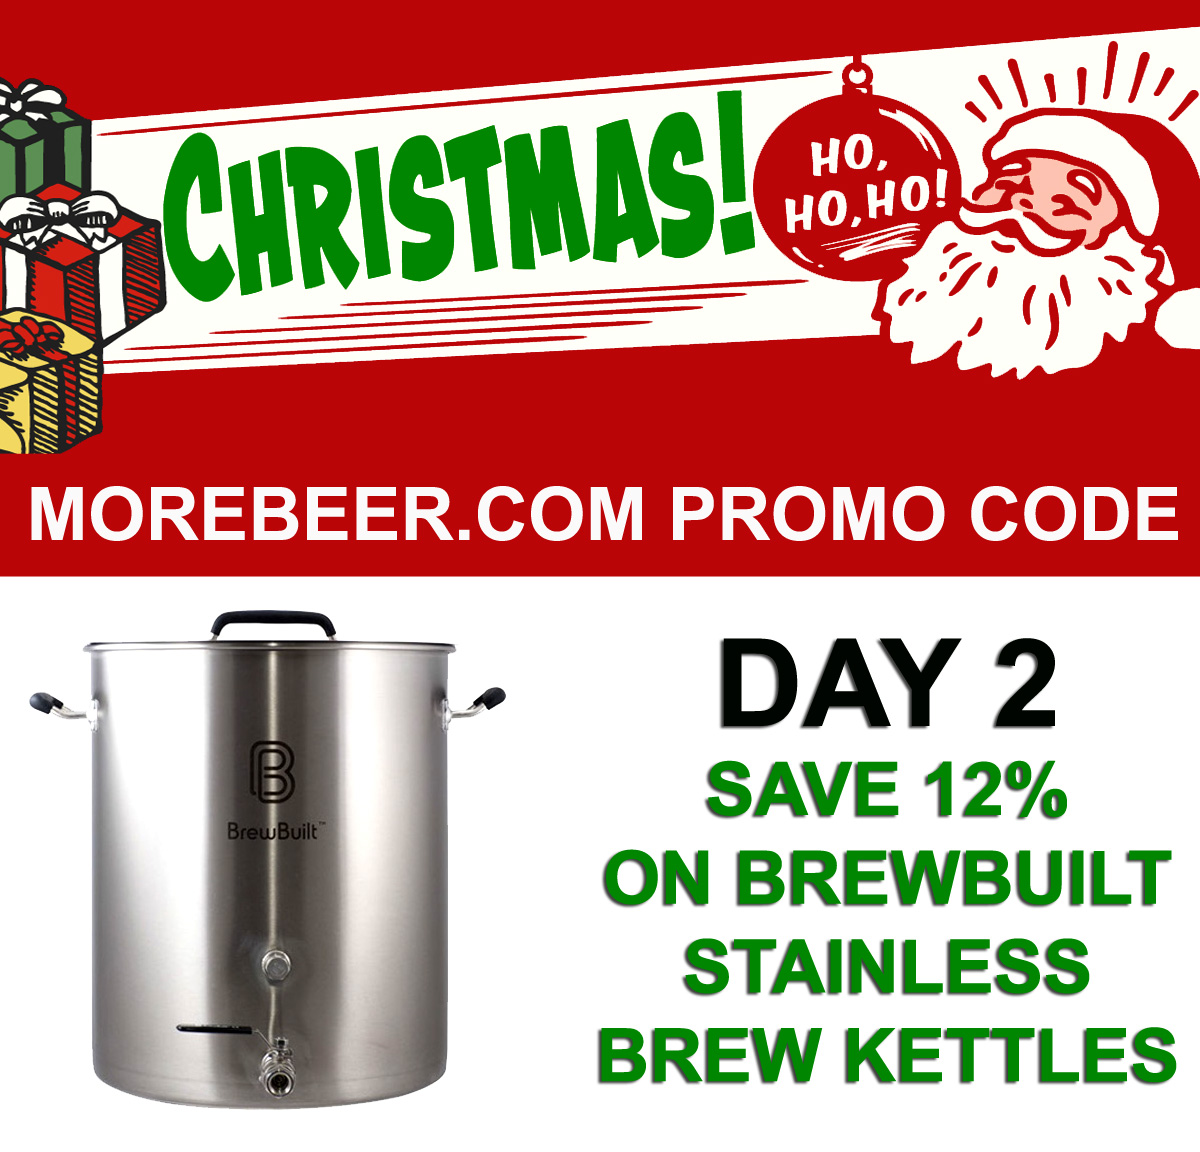 Home Brewer Promo Code for Save 12% On Brew Built Home Brewing Kettles Coupon Code